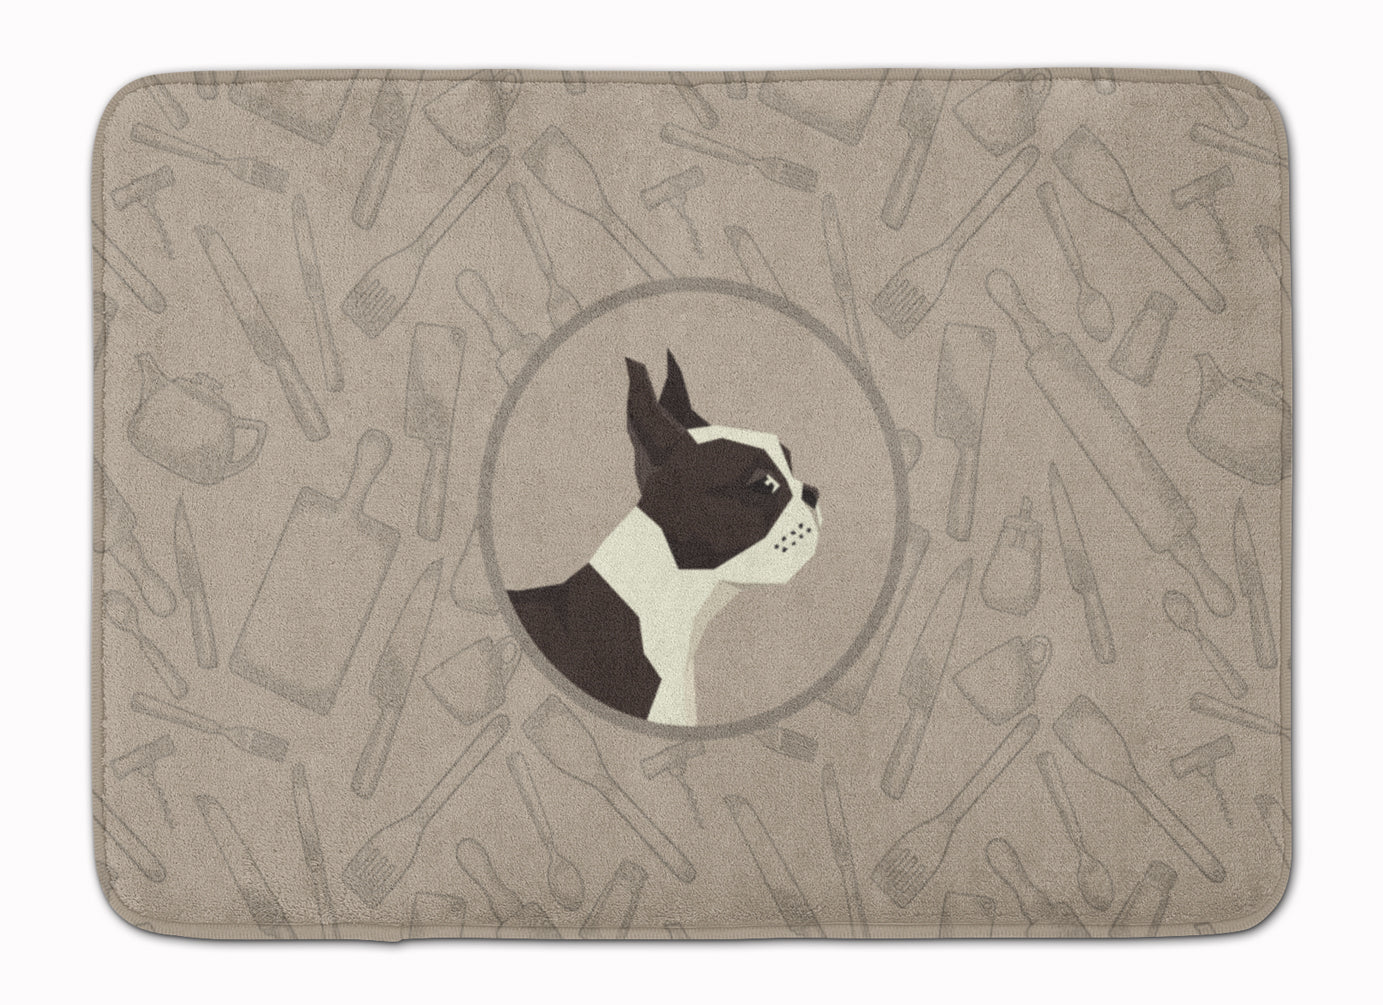 Boston Terrier In the Kitchen Machine Washable Memory Foam Mat CK2172RUG by Caroline's Treasures